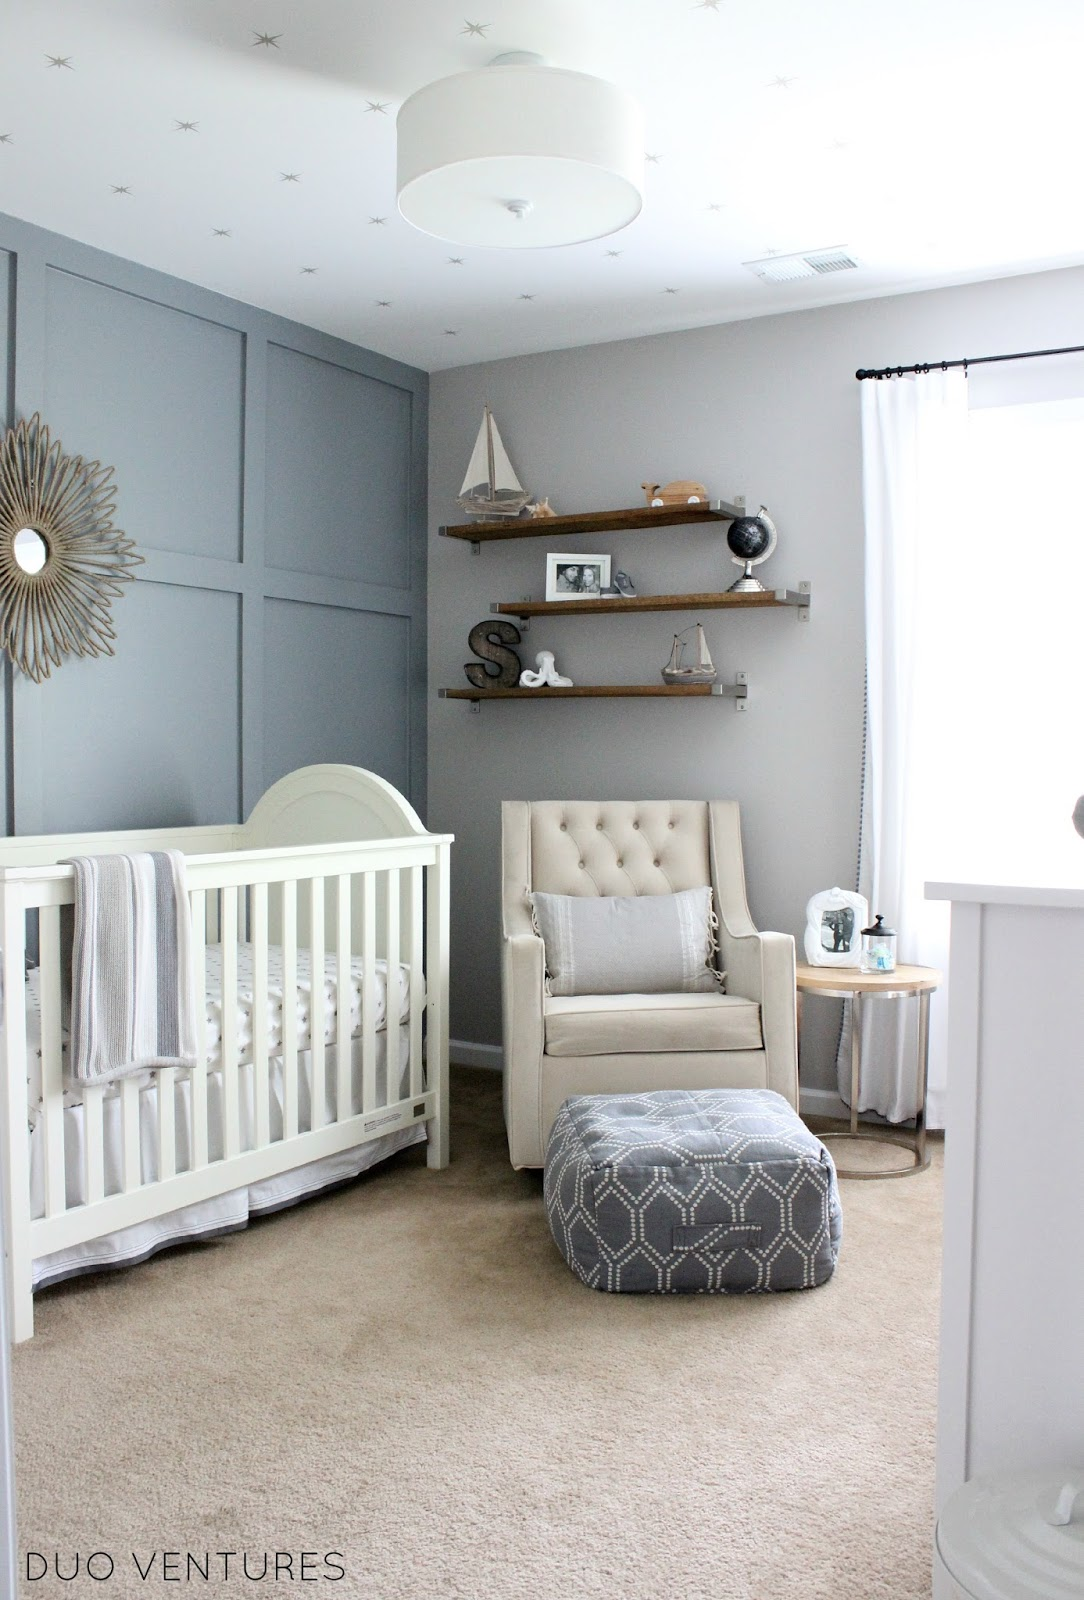 Baby Boy Room Design Pictures: Duo Ventures: Our Hamptons Inspired Nursery: Final Reveal